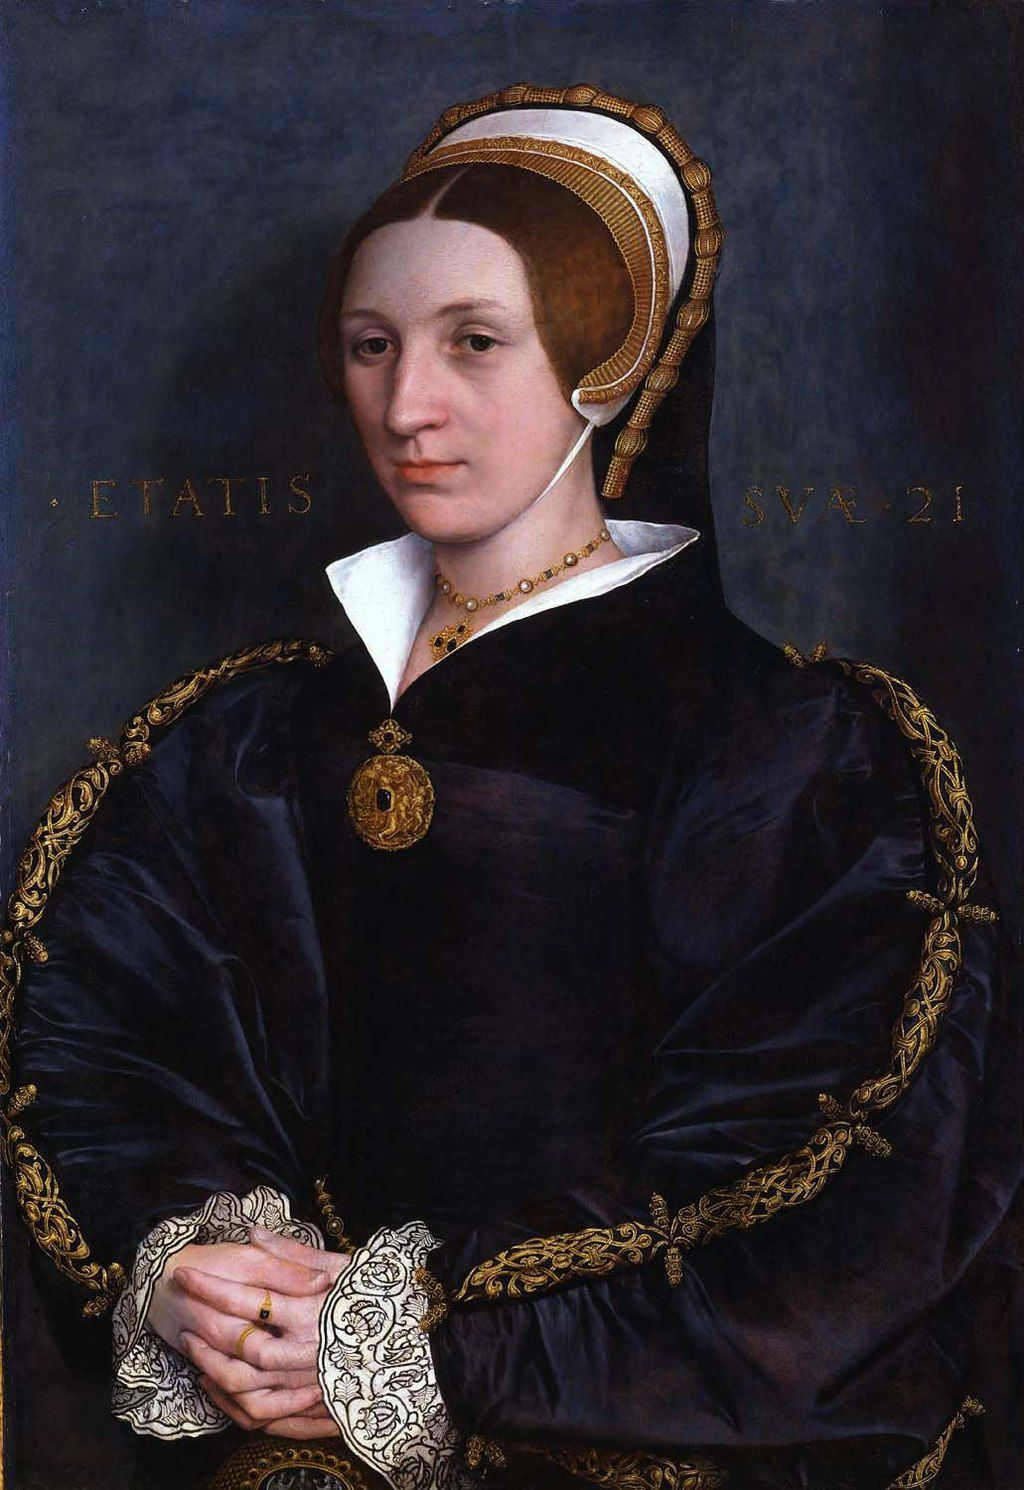 1024px-holbein_hans_ii_-_portrait_of_a_lady_probably_of_the_cromwell_family_formerly_known_as_catherine_howard_-_wga11565